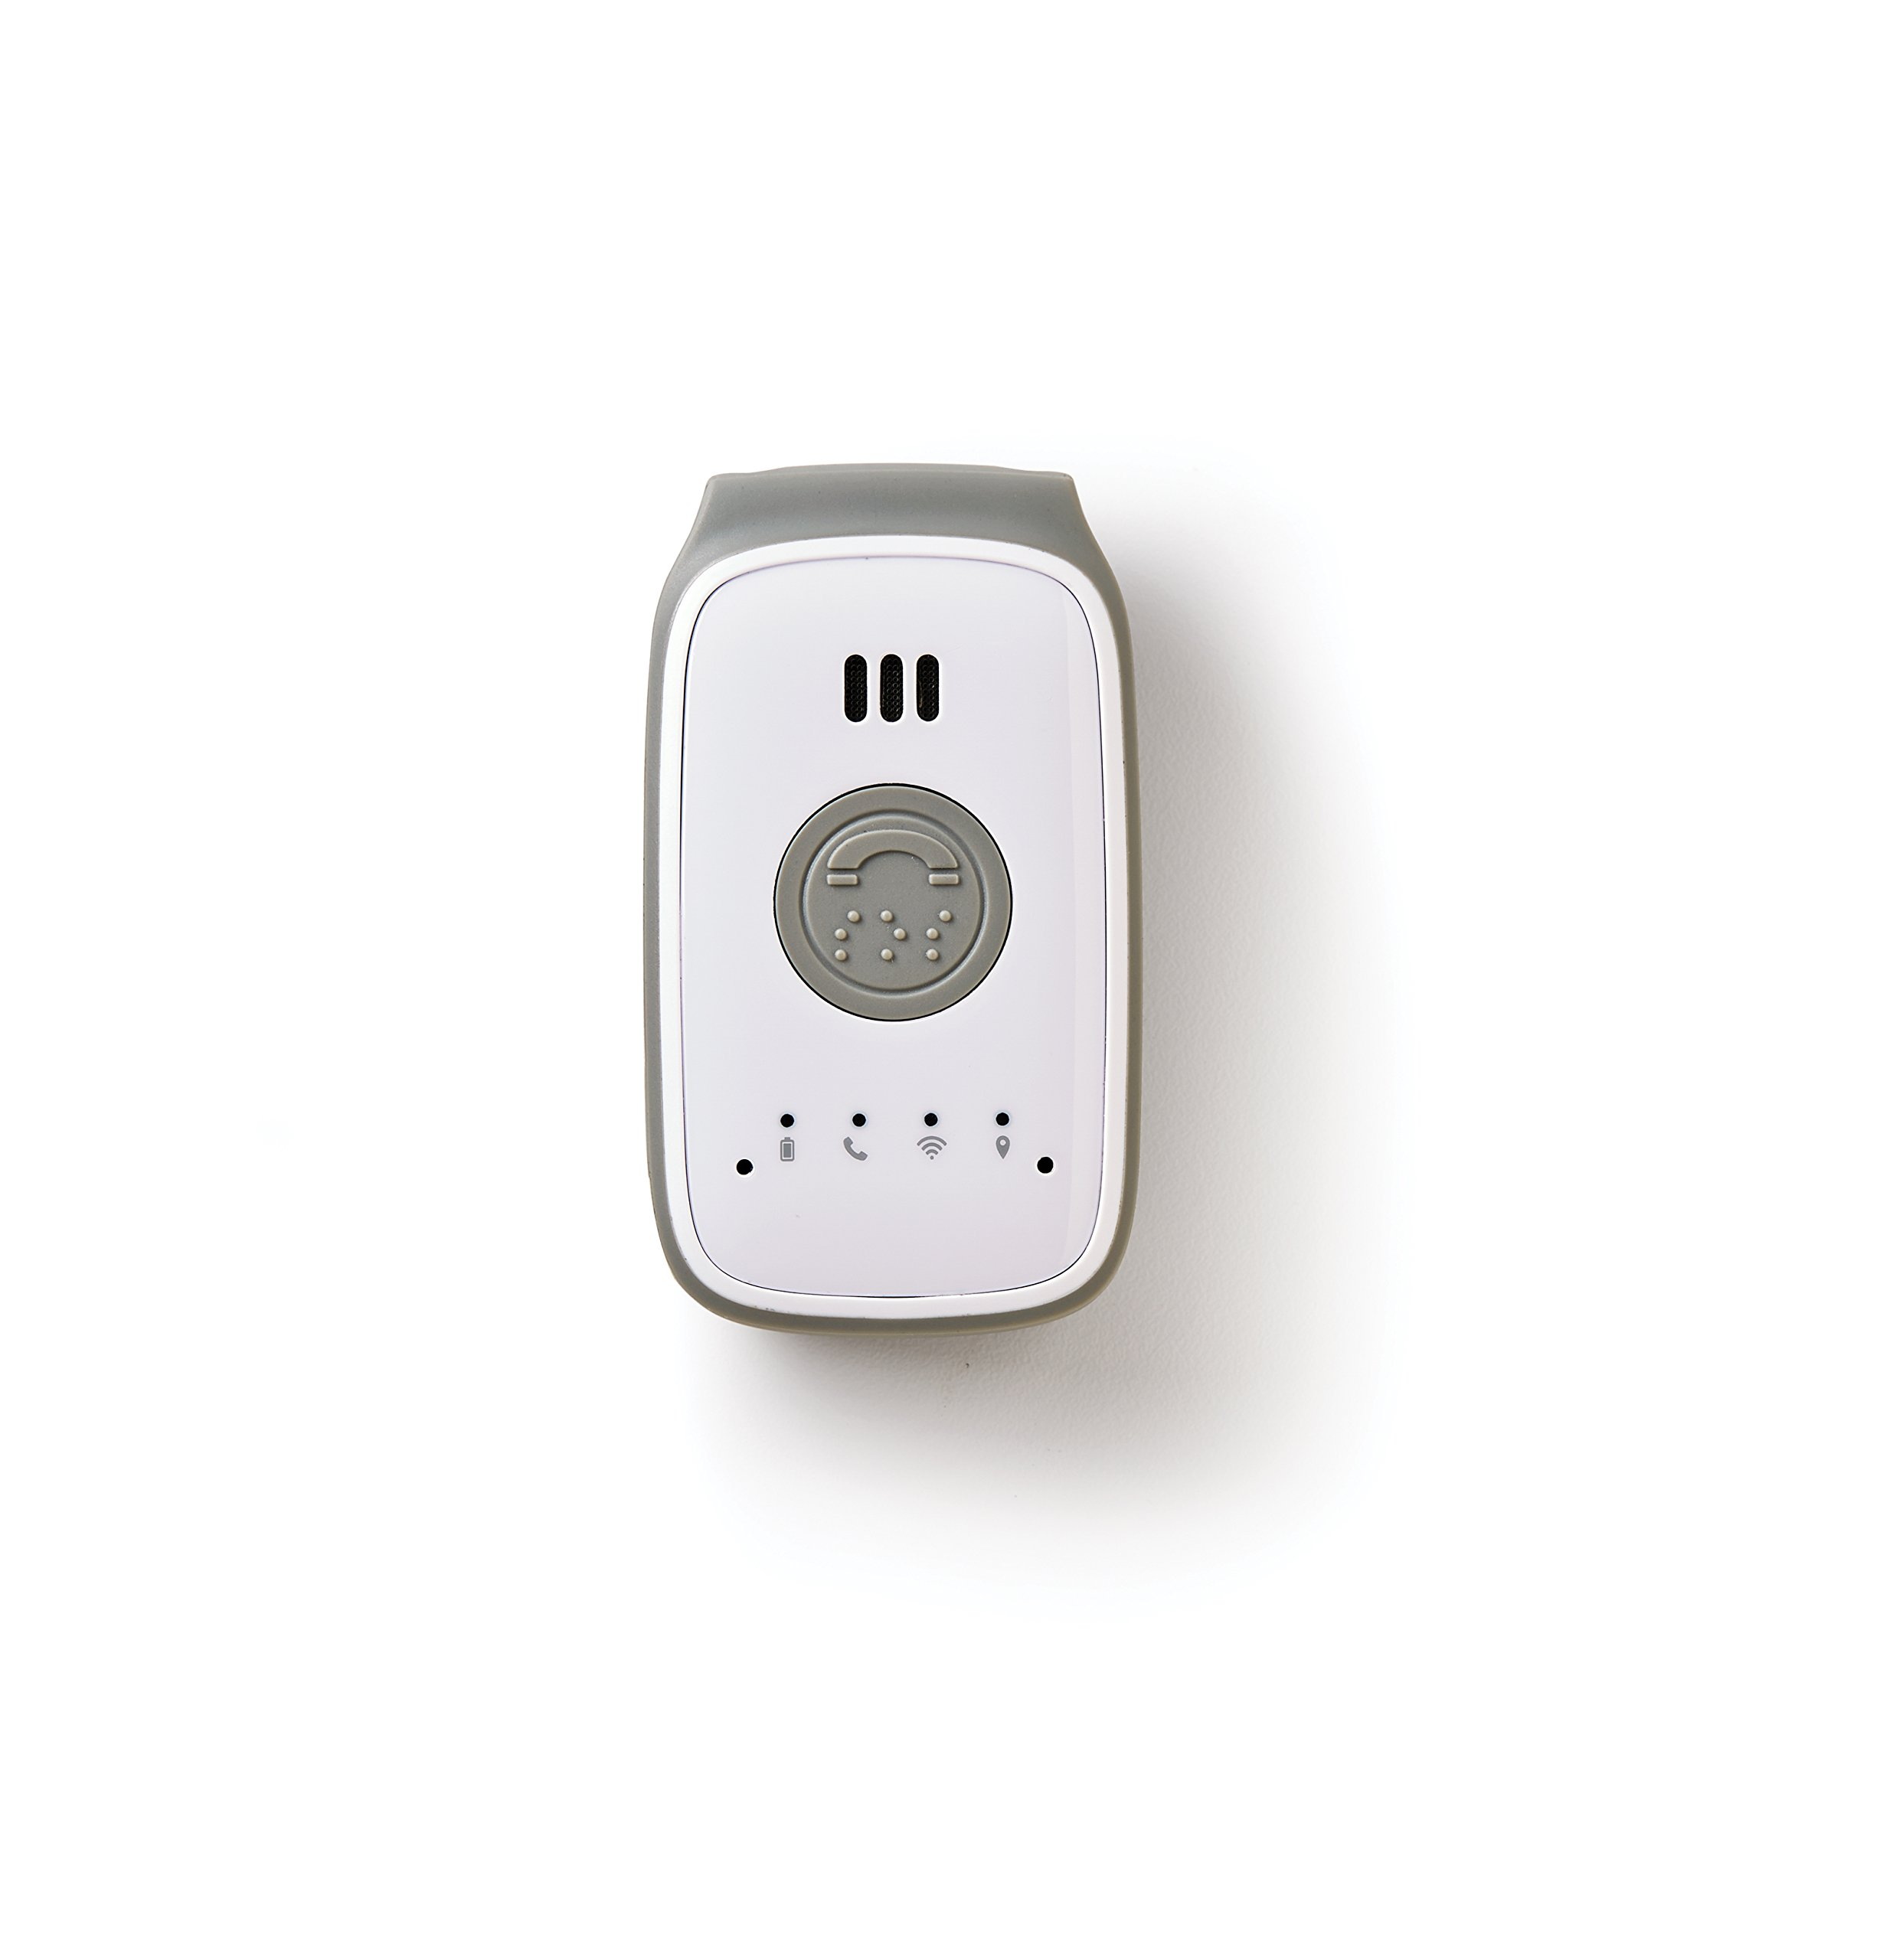 Active Guardian - All-in-one, Life-Saving Mobile Medical Alert System. Nationwide Coverage, WiFi and GPS Location Technology, 1 Month of 24/7 Emergency Monitoring Service Included (100% U.S. Based)